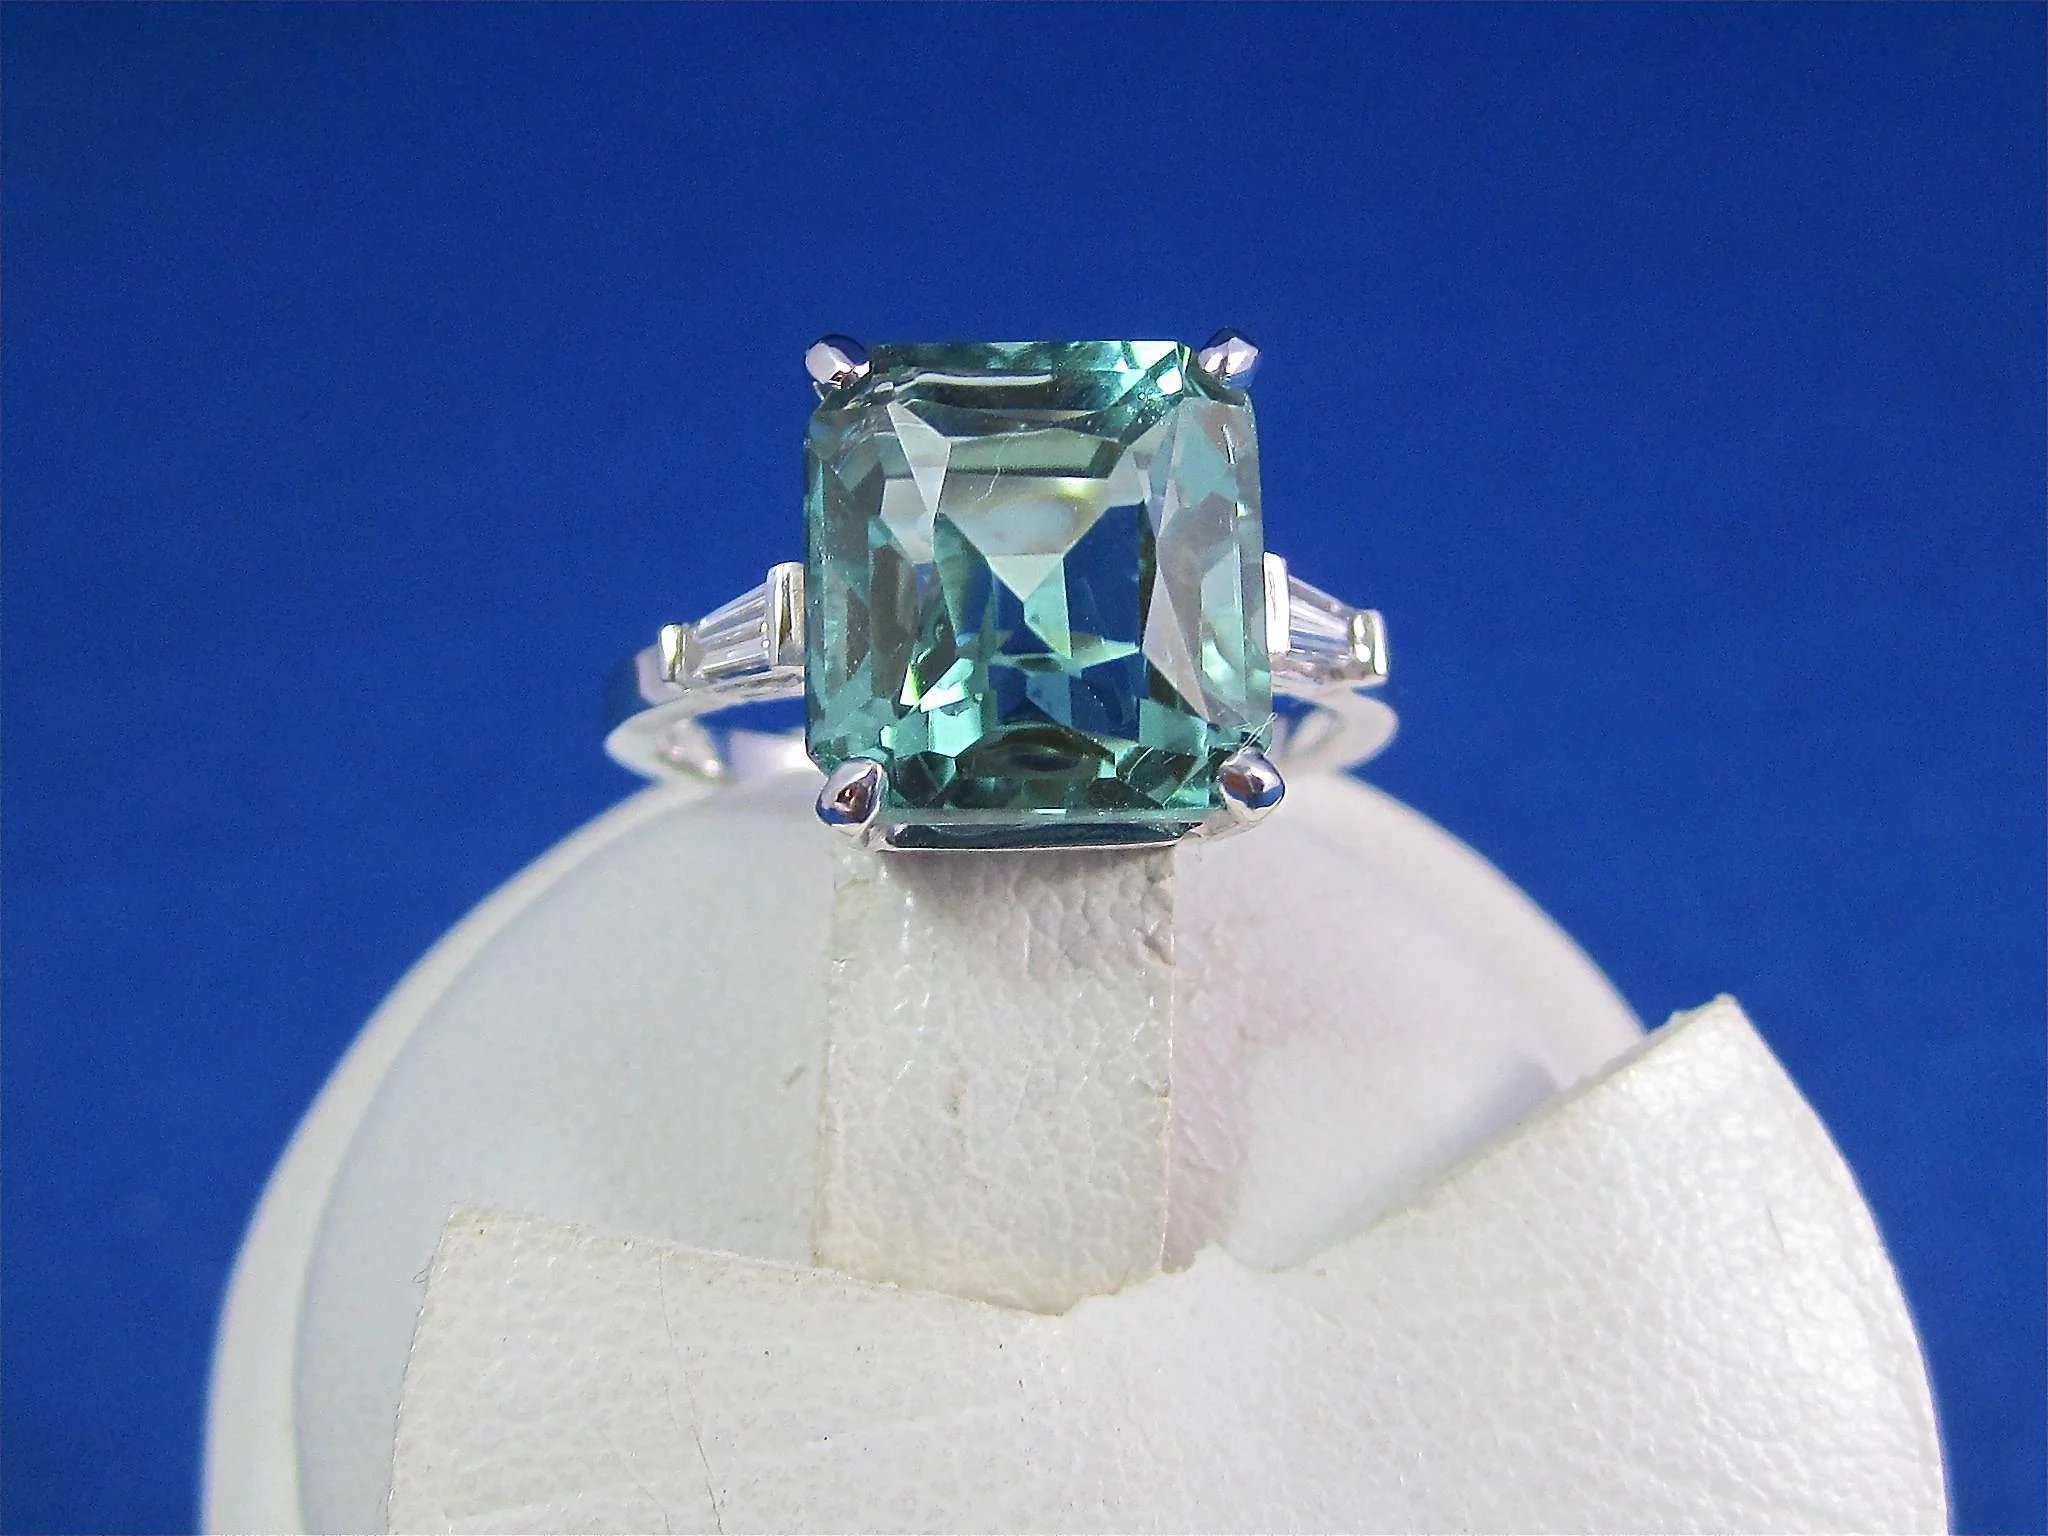 green full rings item diamond engagement birthstone estate expand natural quartz s ring to wedding blue click